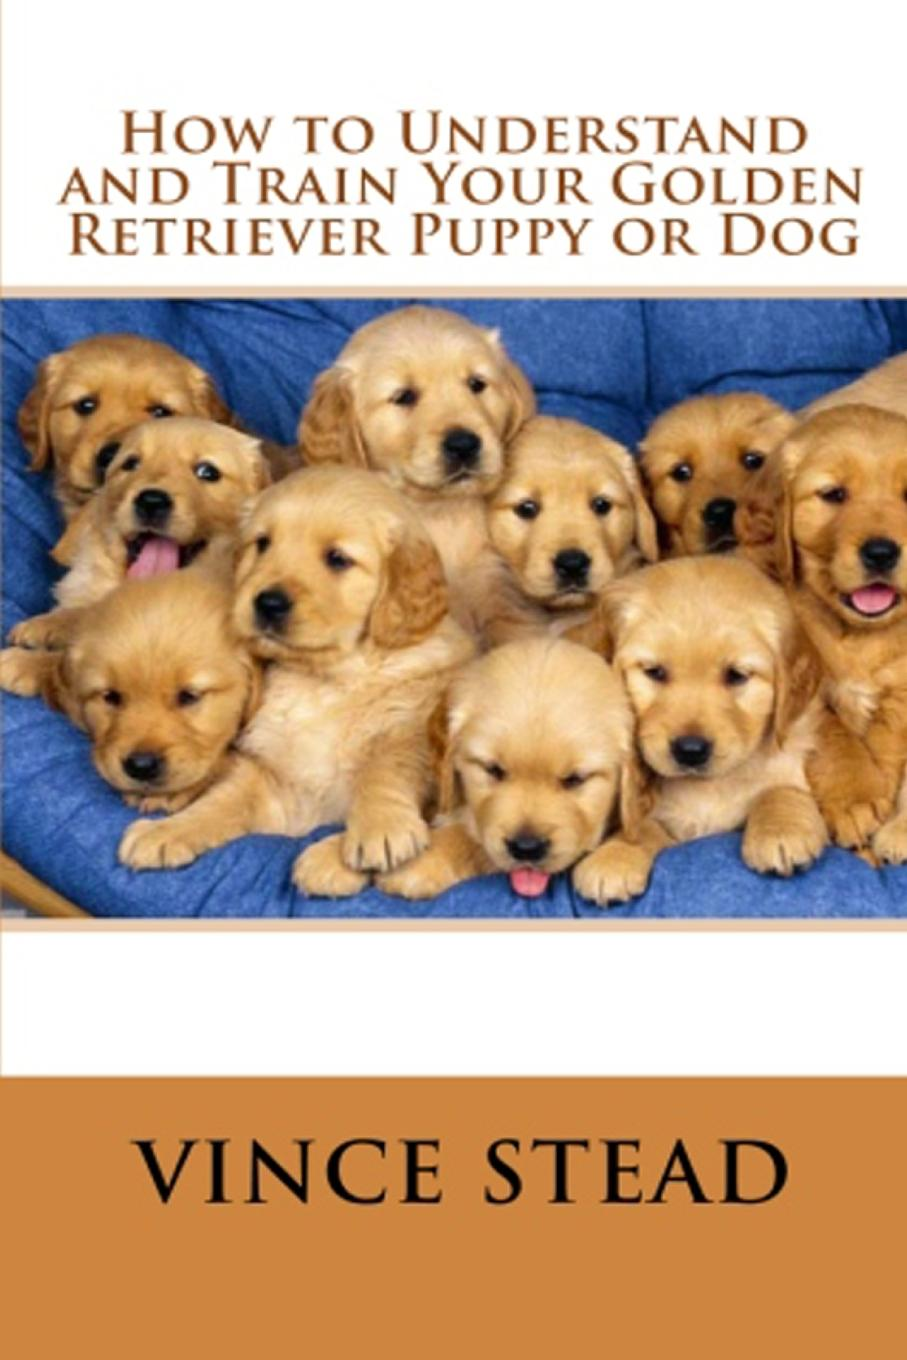 Vince Stead How to Understand and Train Your Golden Retriever Puppy or Dog vince stead how to understand and train your golden retriever puppy or dog